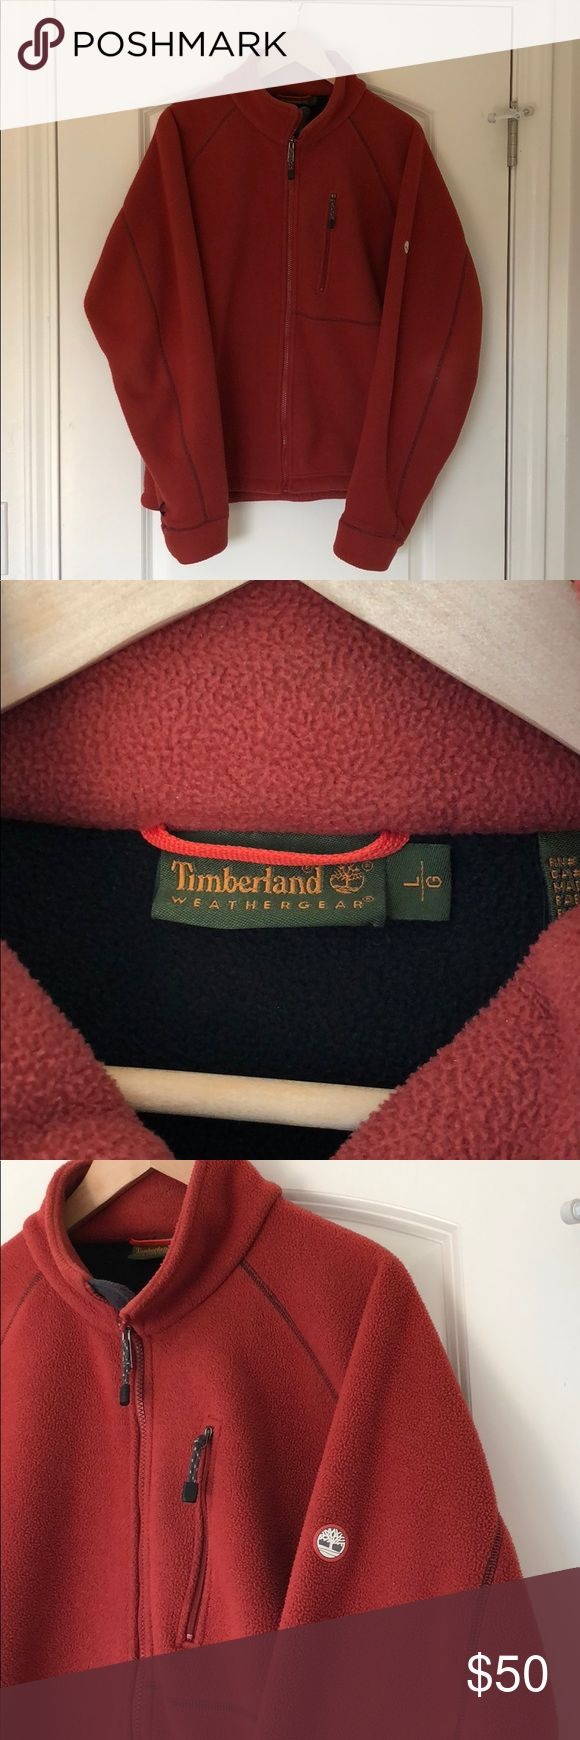 Men's burnt orange Timberland jacket Very warm and cozy men's Timberland jacket in burnt orange. Zippered breast pocket, jacket is in great shape Timberland Jackets & Coats